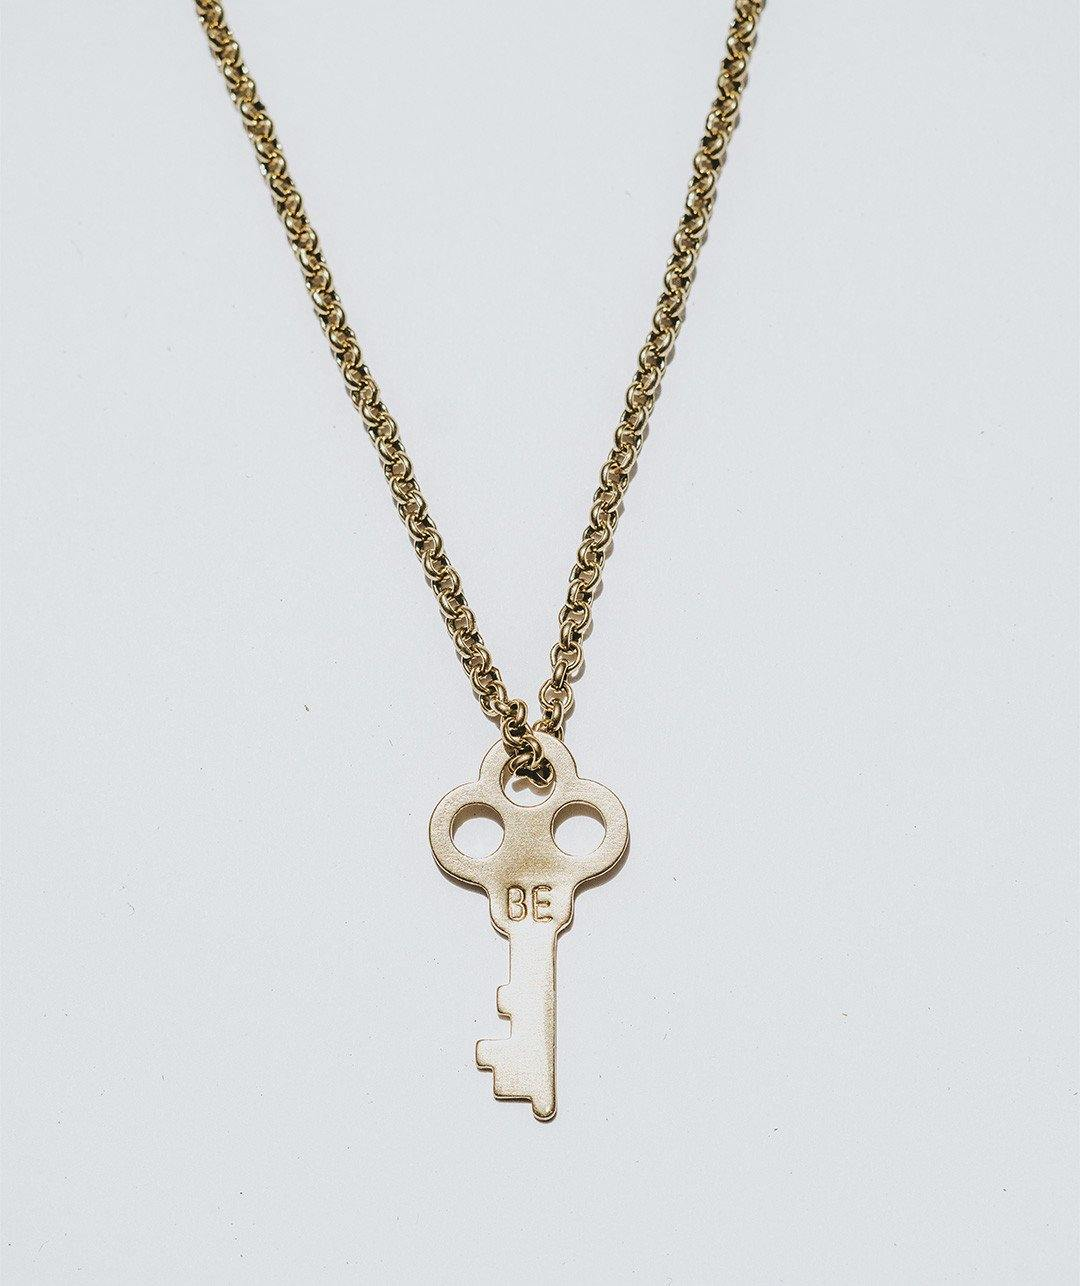 BE Key Necklace - FREE GIFT WITH PURCHASE